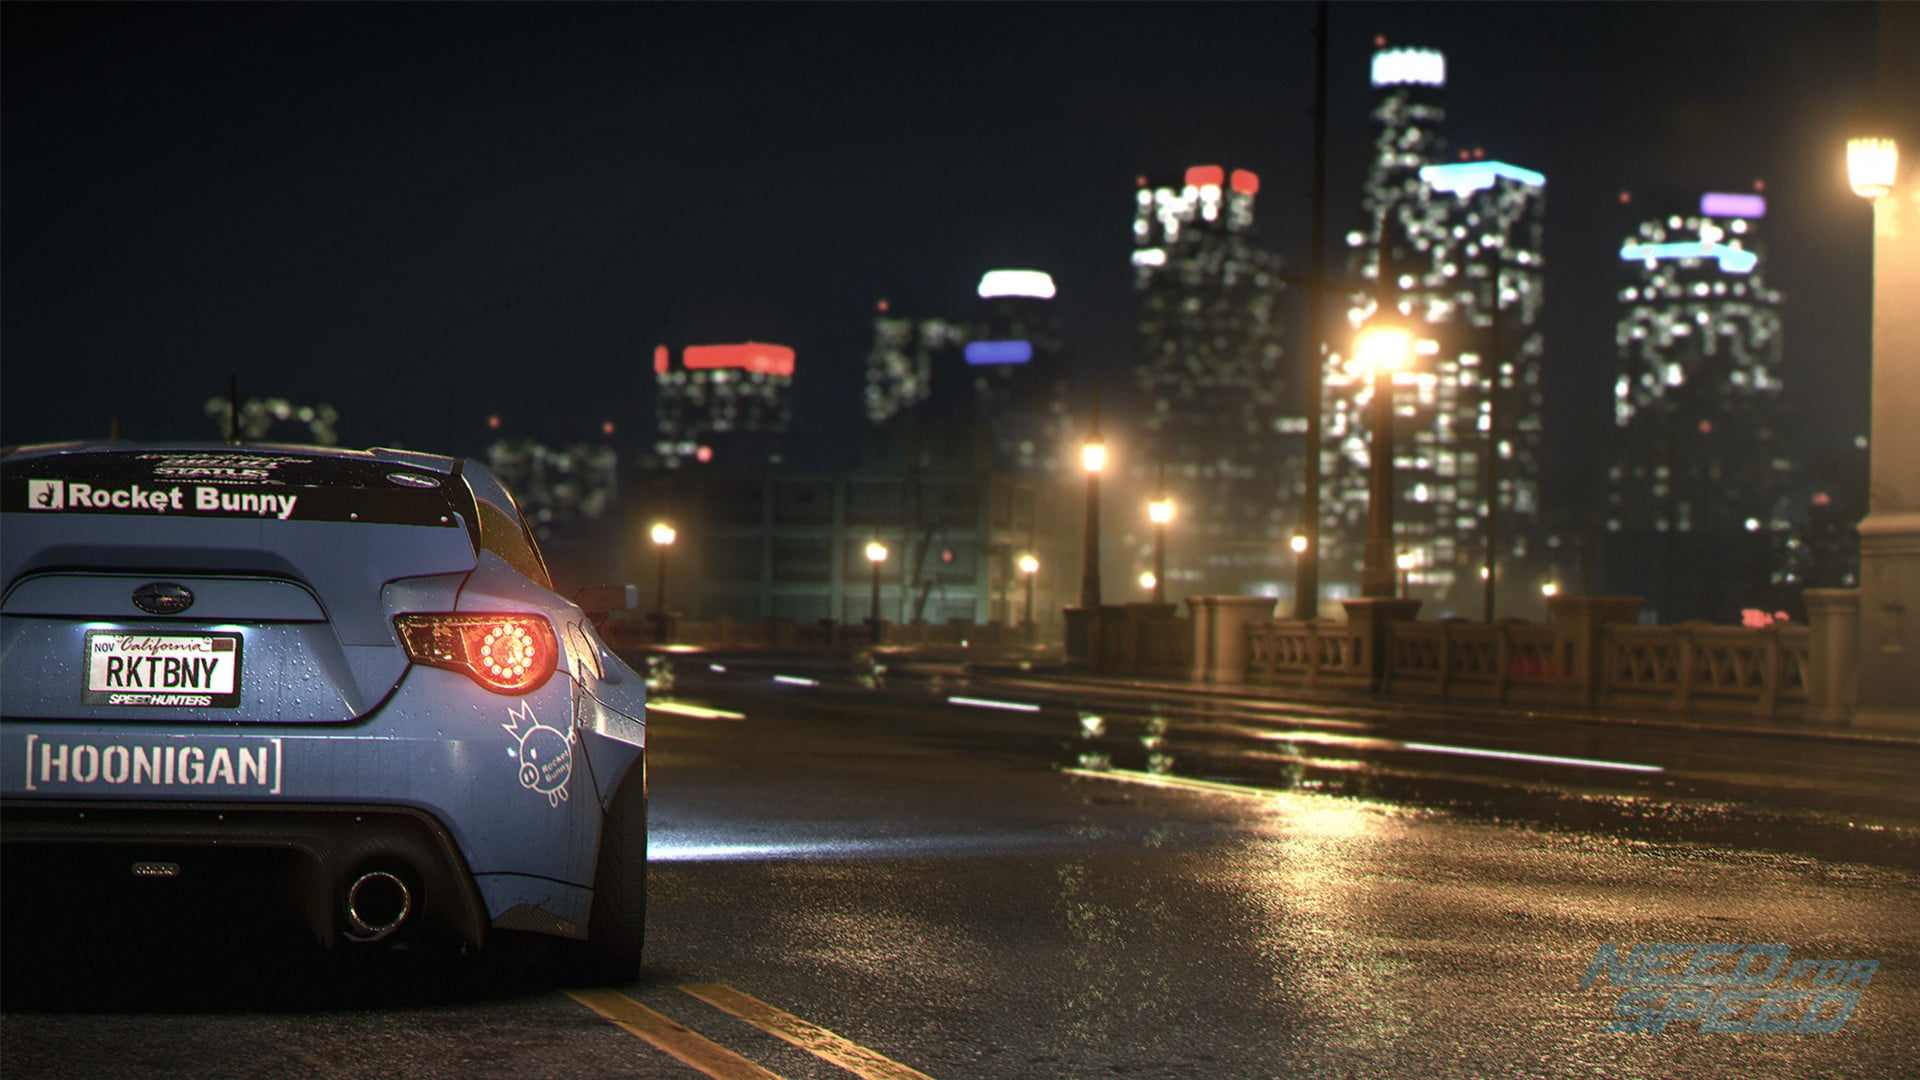 108 mobile walls 9 art 1054 images 64 avatars 19 gifs. Black Car On Road During Night Time Hd Wallpaper Wallpaper Flare